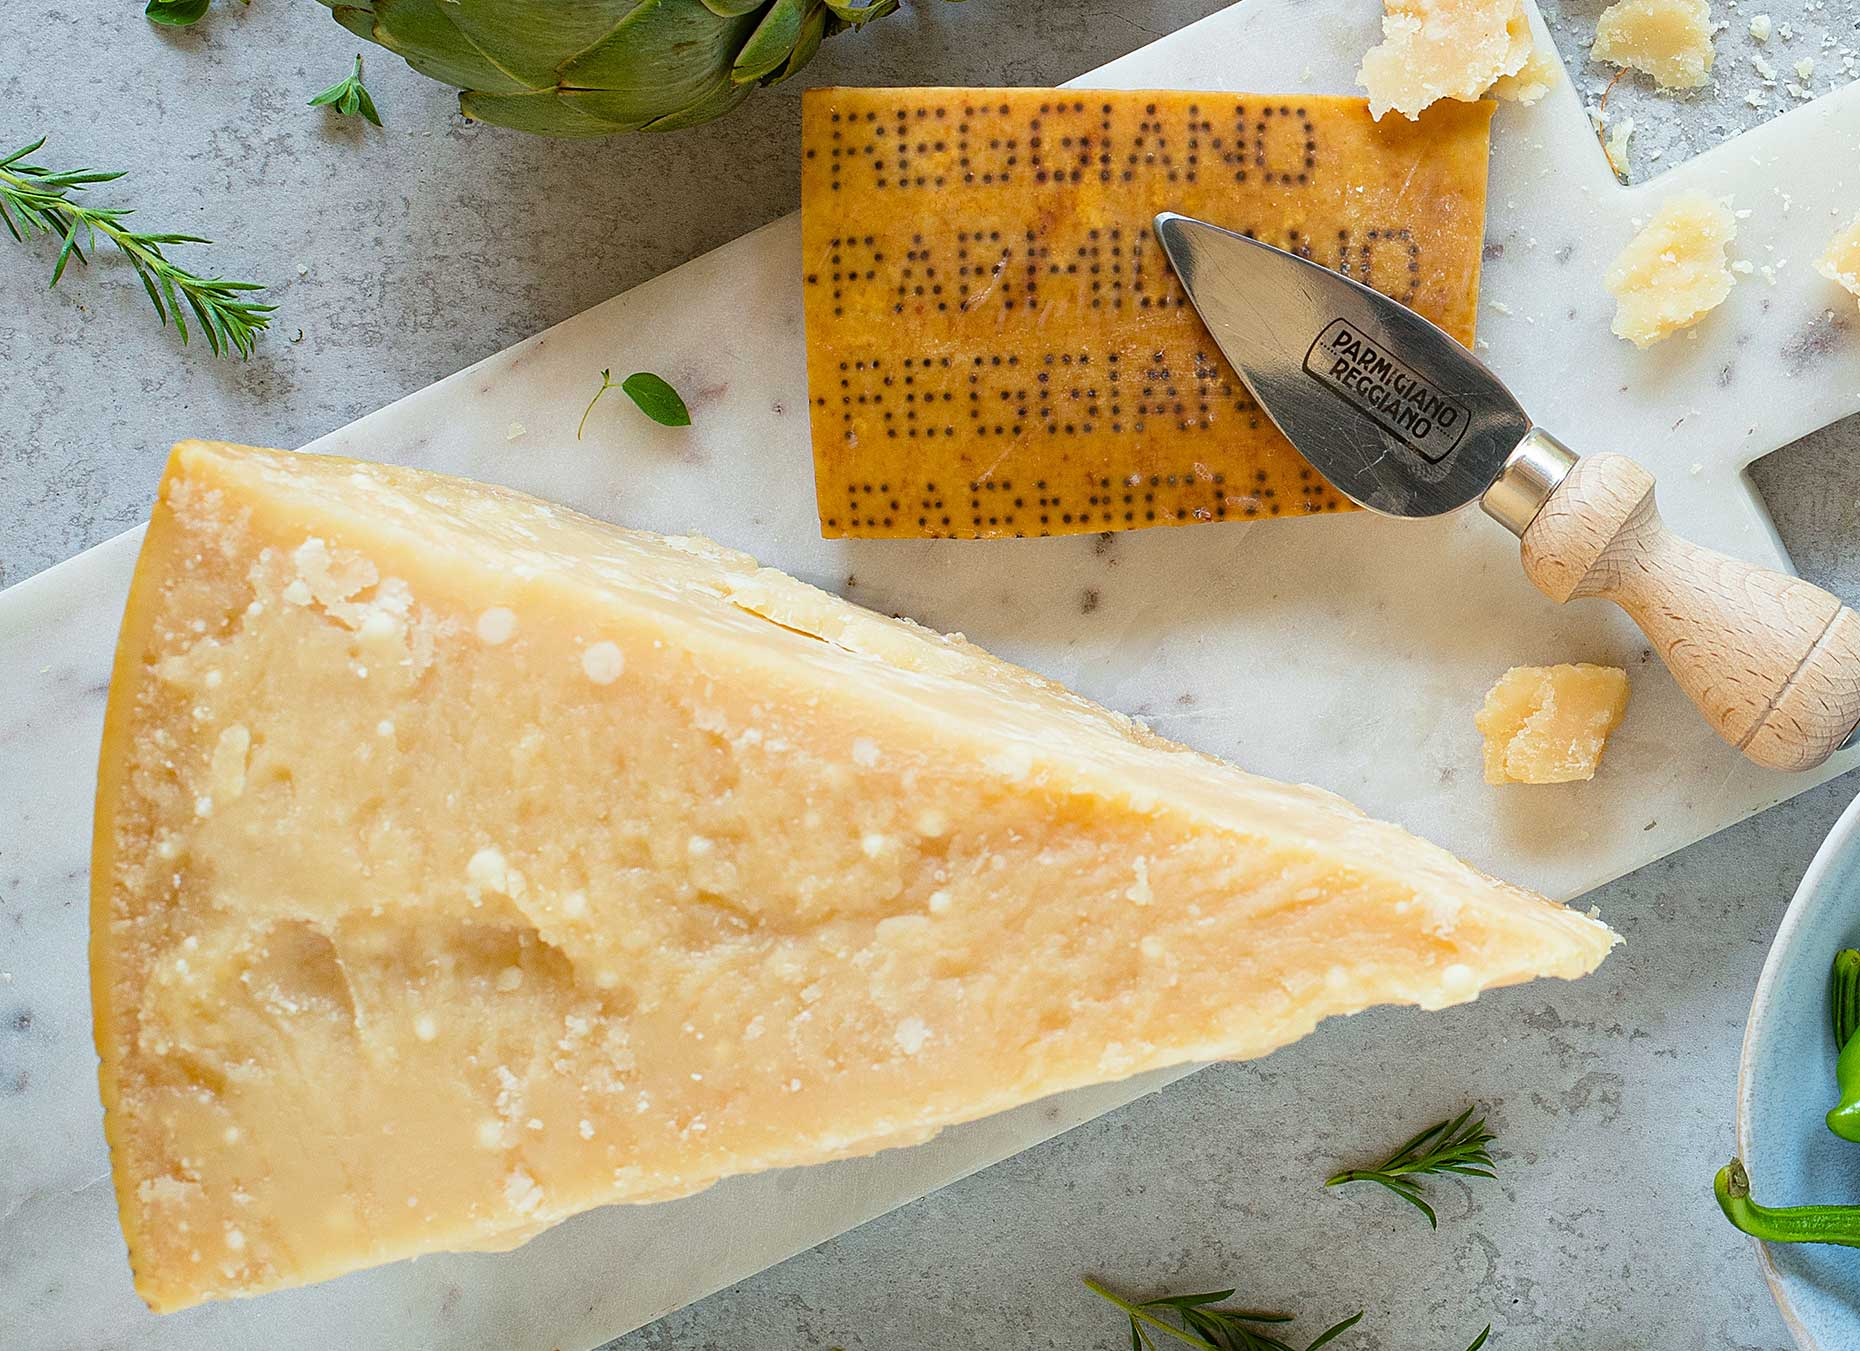 Almond-shaped knife for Parmesan (Image: Courtesy of Consortium of Parmigiano Reggiano)